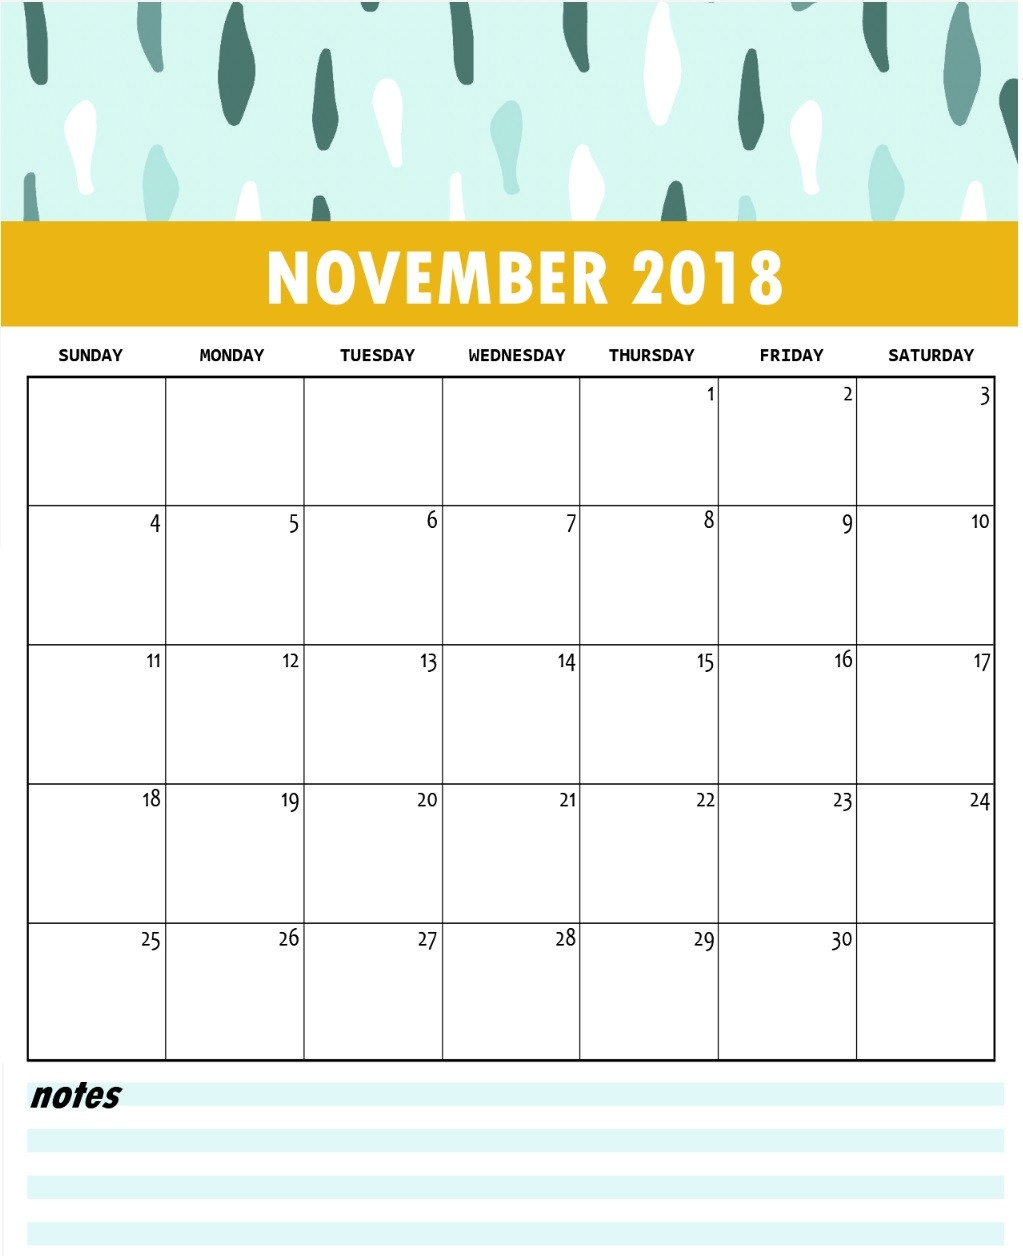 landscape portrait calendar template of november 2018 downlaod::November 2018 Calendar Printable Template